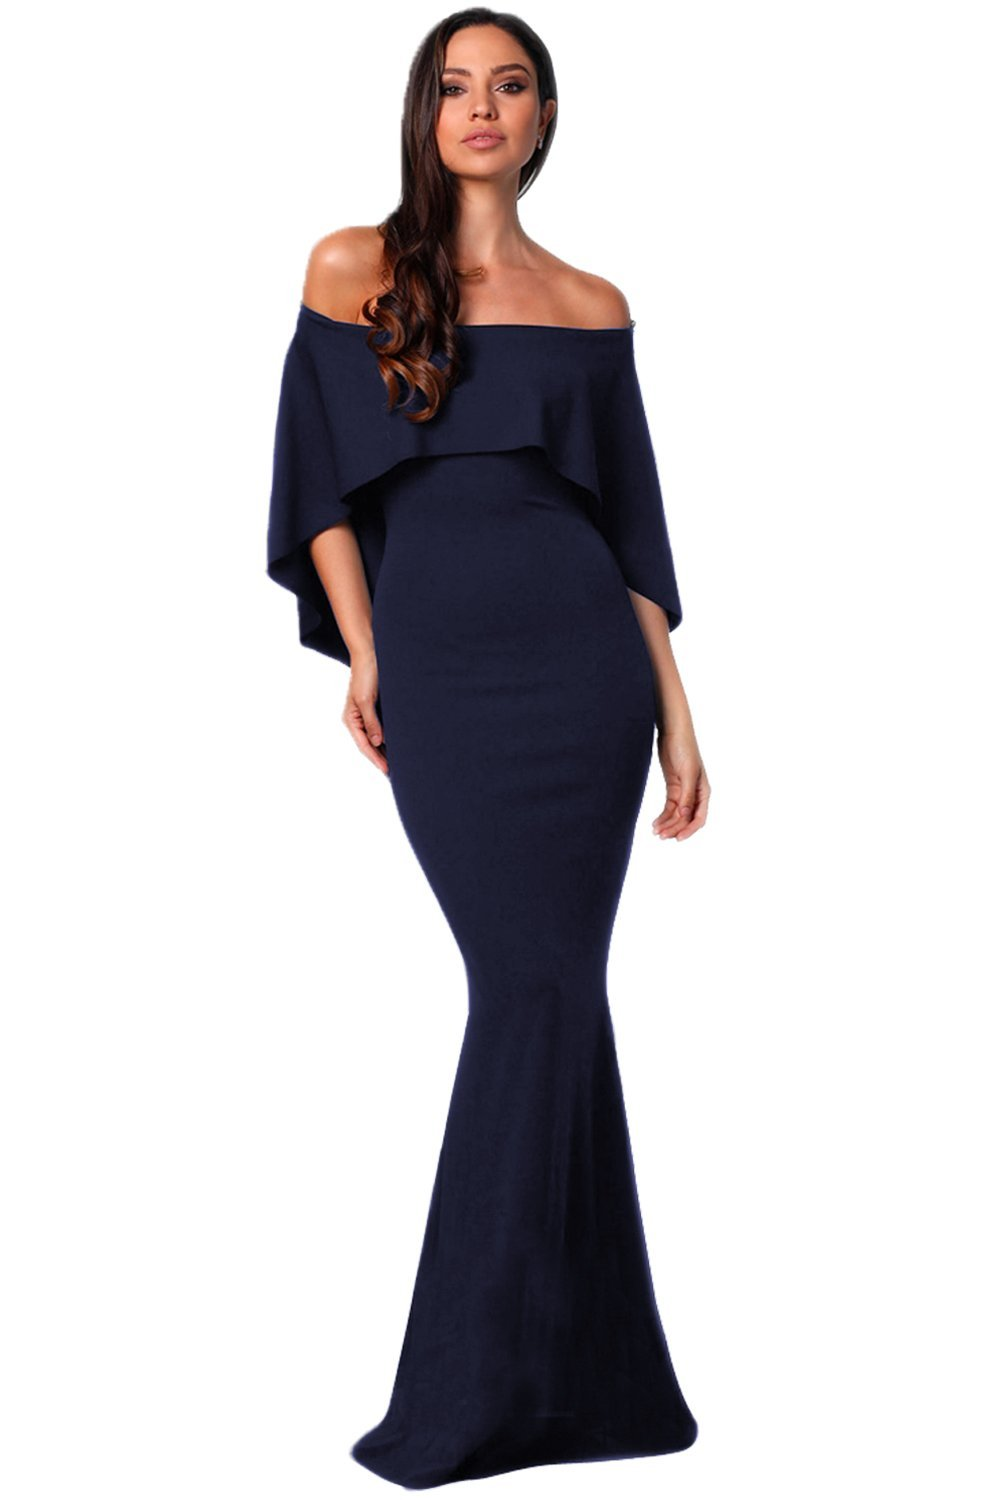 Women's Sexy Off Shoulder Evening Maxi Dress Bodycorn Cocktail Party Dress Navy Blue S